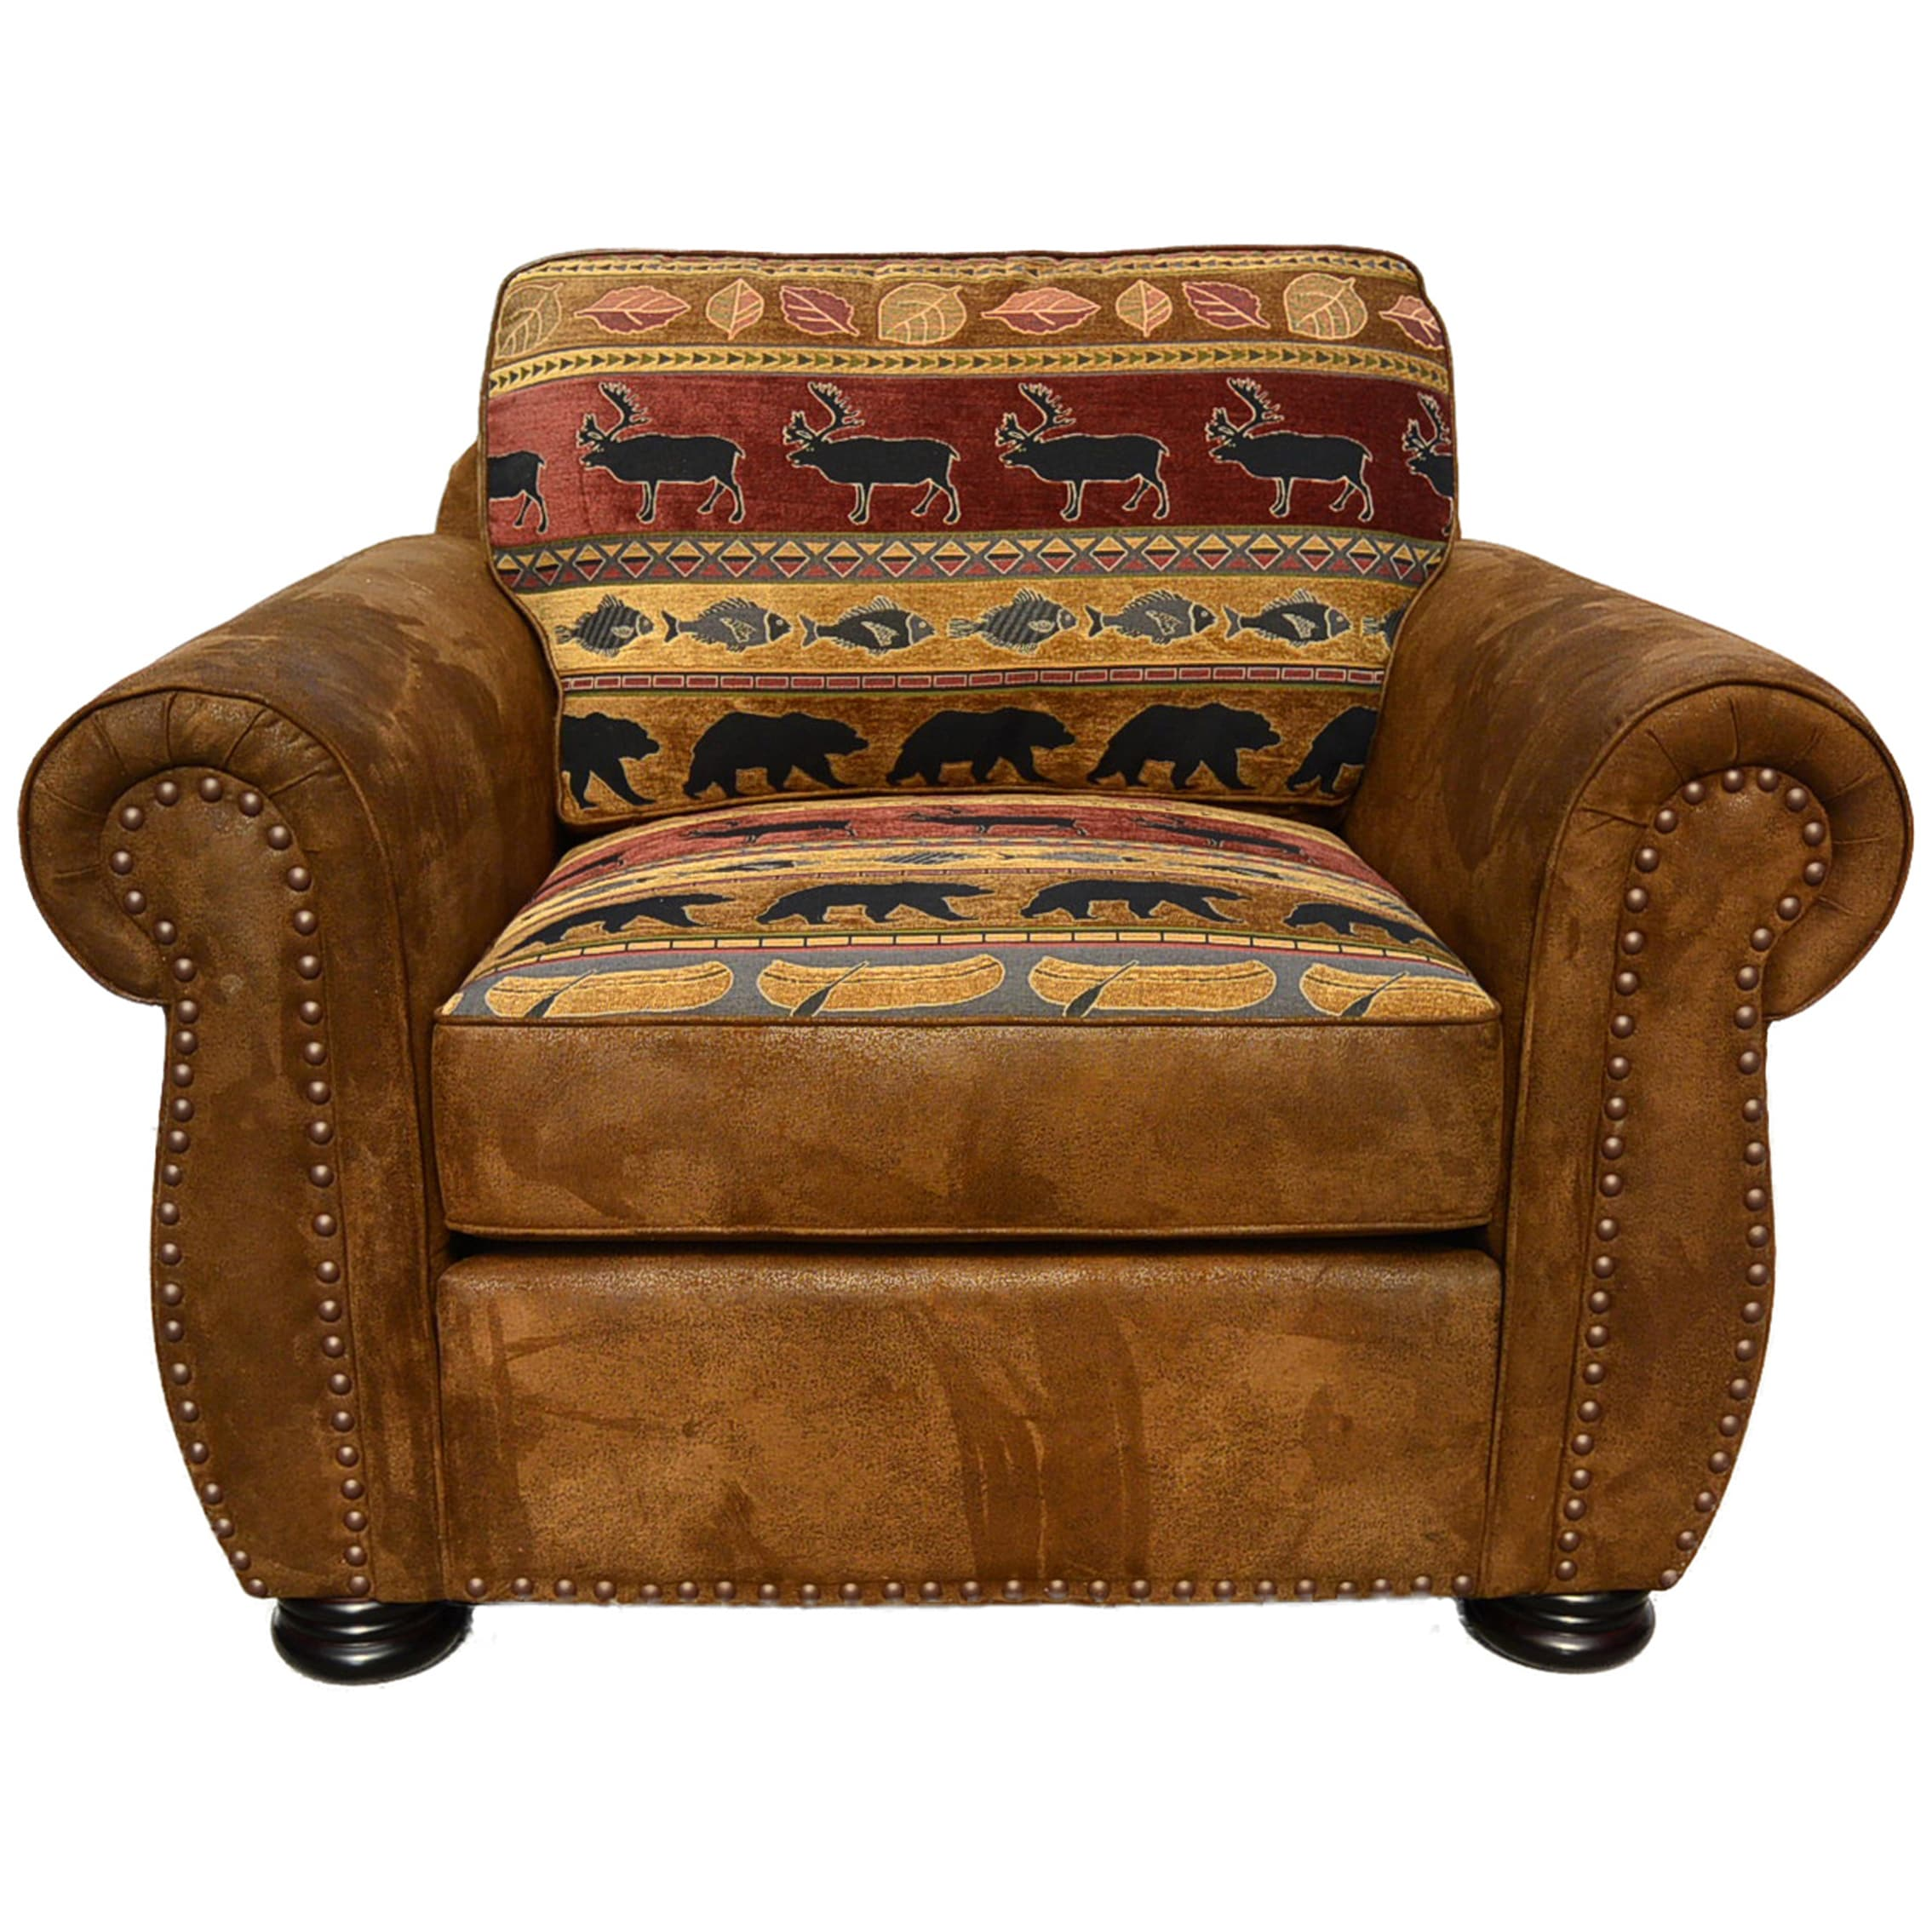 Shop Porter Hunter Lodge Style Brown Accent Chair With Deer, Bear And Fish  Woven Fabric   Free Shipping Today   Overstock.com   11600106